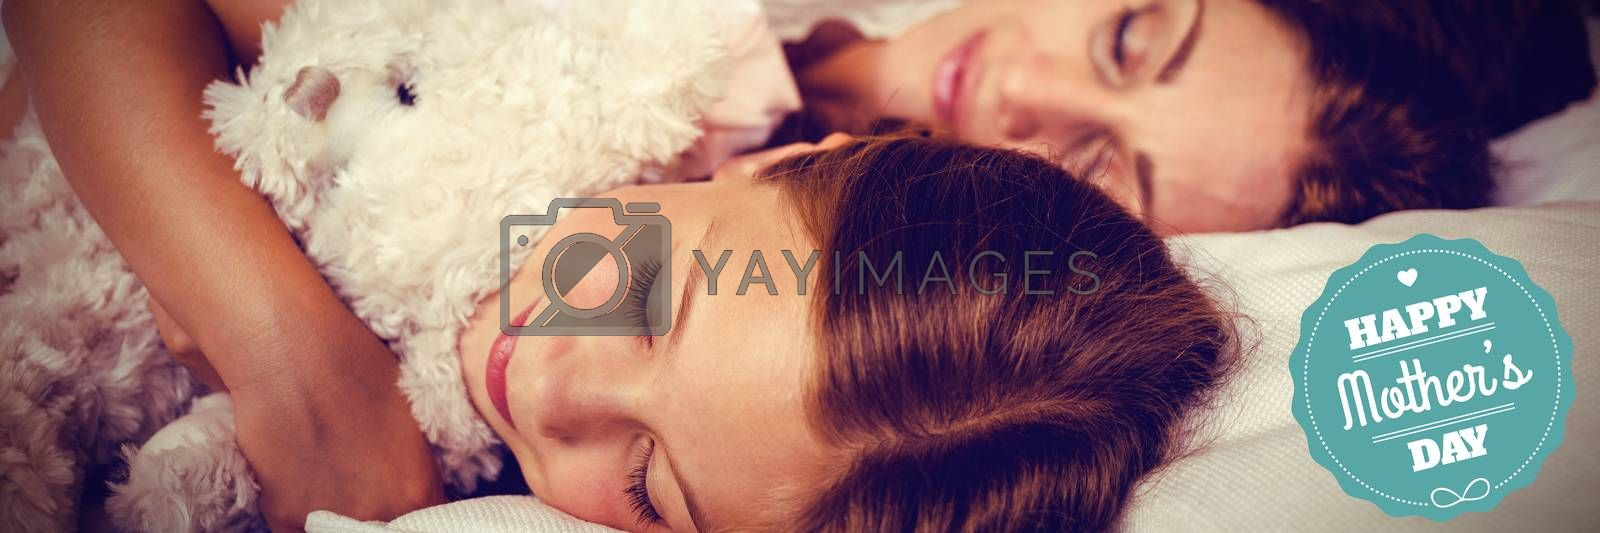 mothers day greeting against high angle view of family sleeping on bed